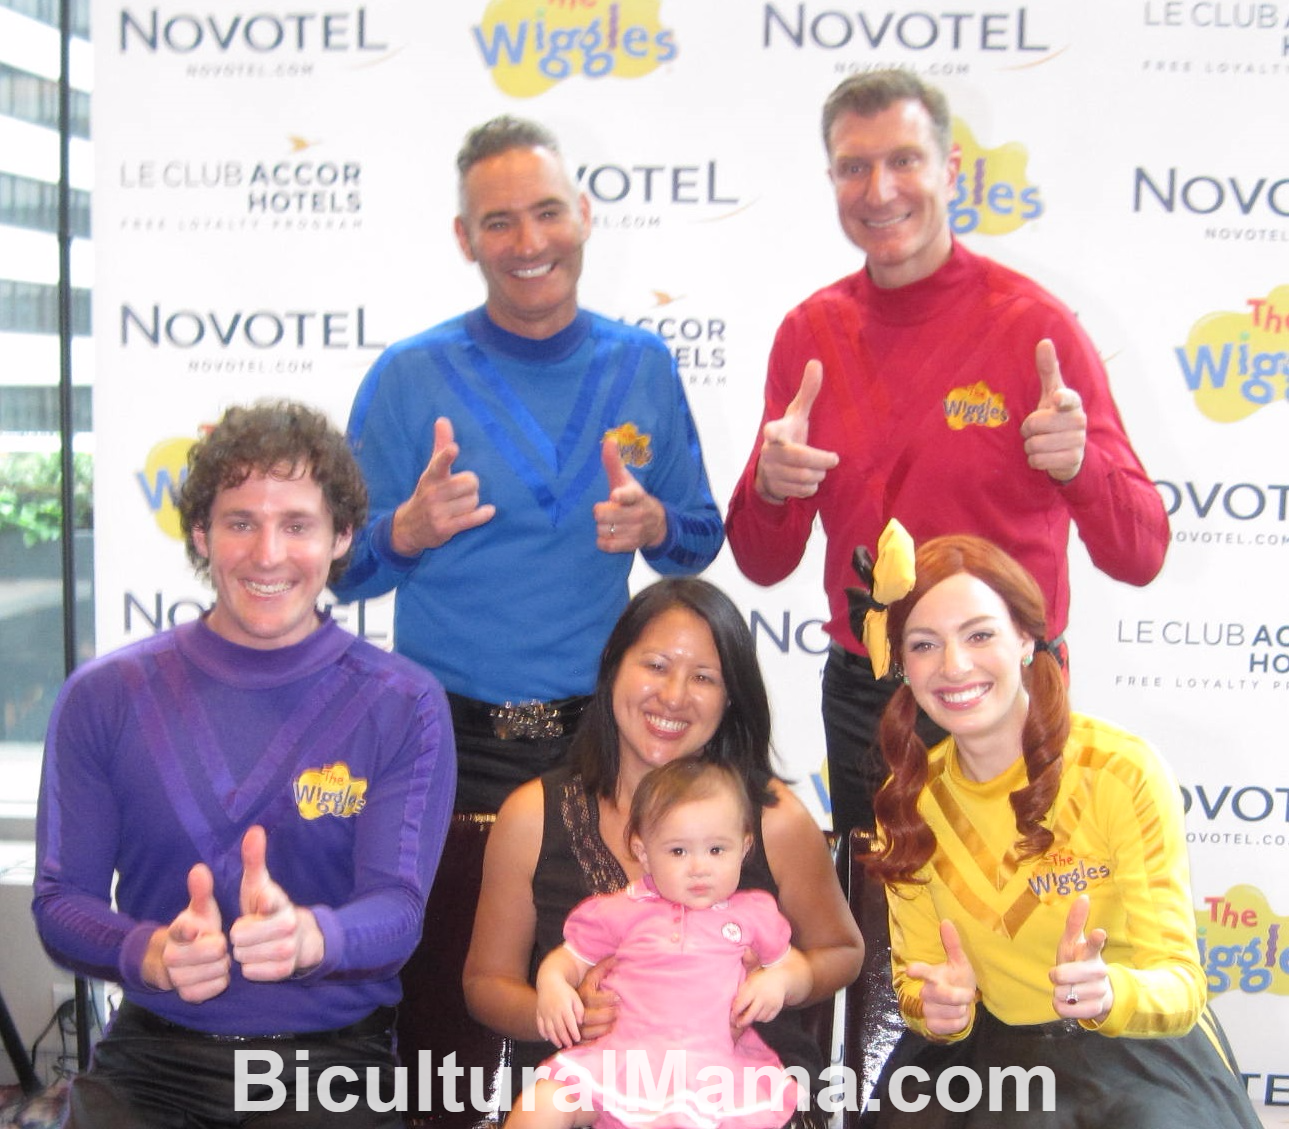 the wiggles as a popular culture Popular culture in terms of iconic technology includes wireless technology, mp3 players and plasma and lcd screens the wiggles and shrek.